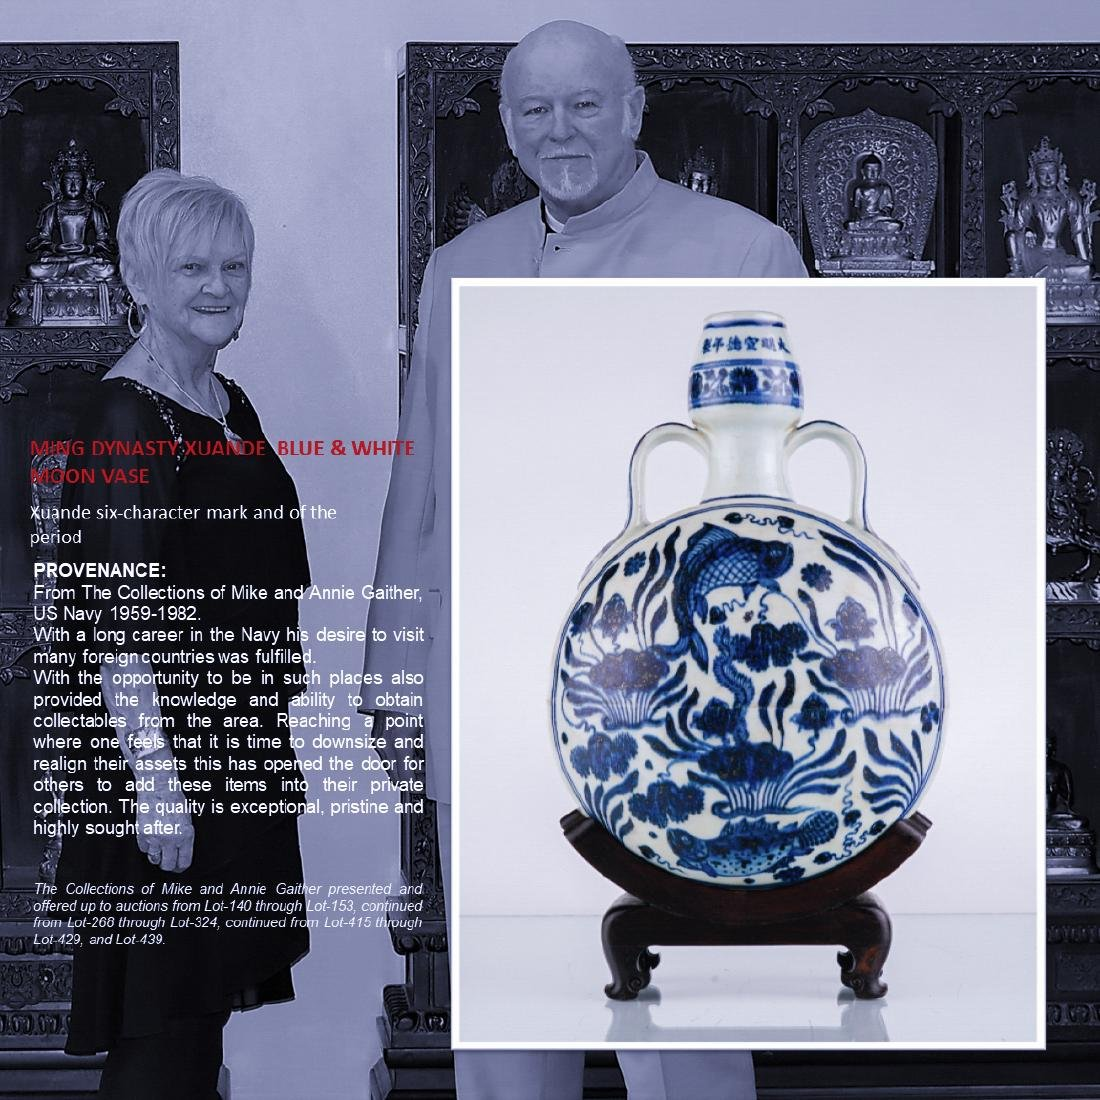 XUANDE BLUE & WHITE MOONFLASK